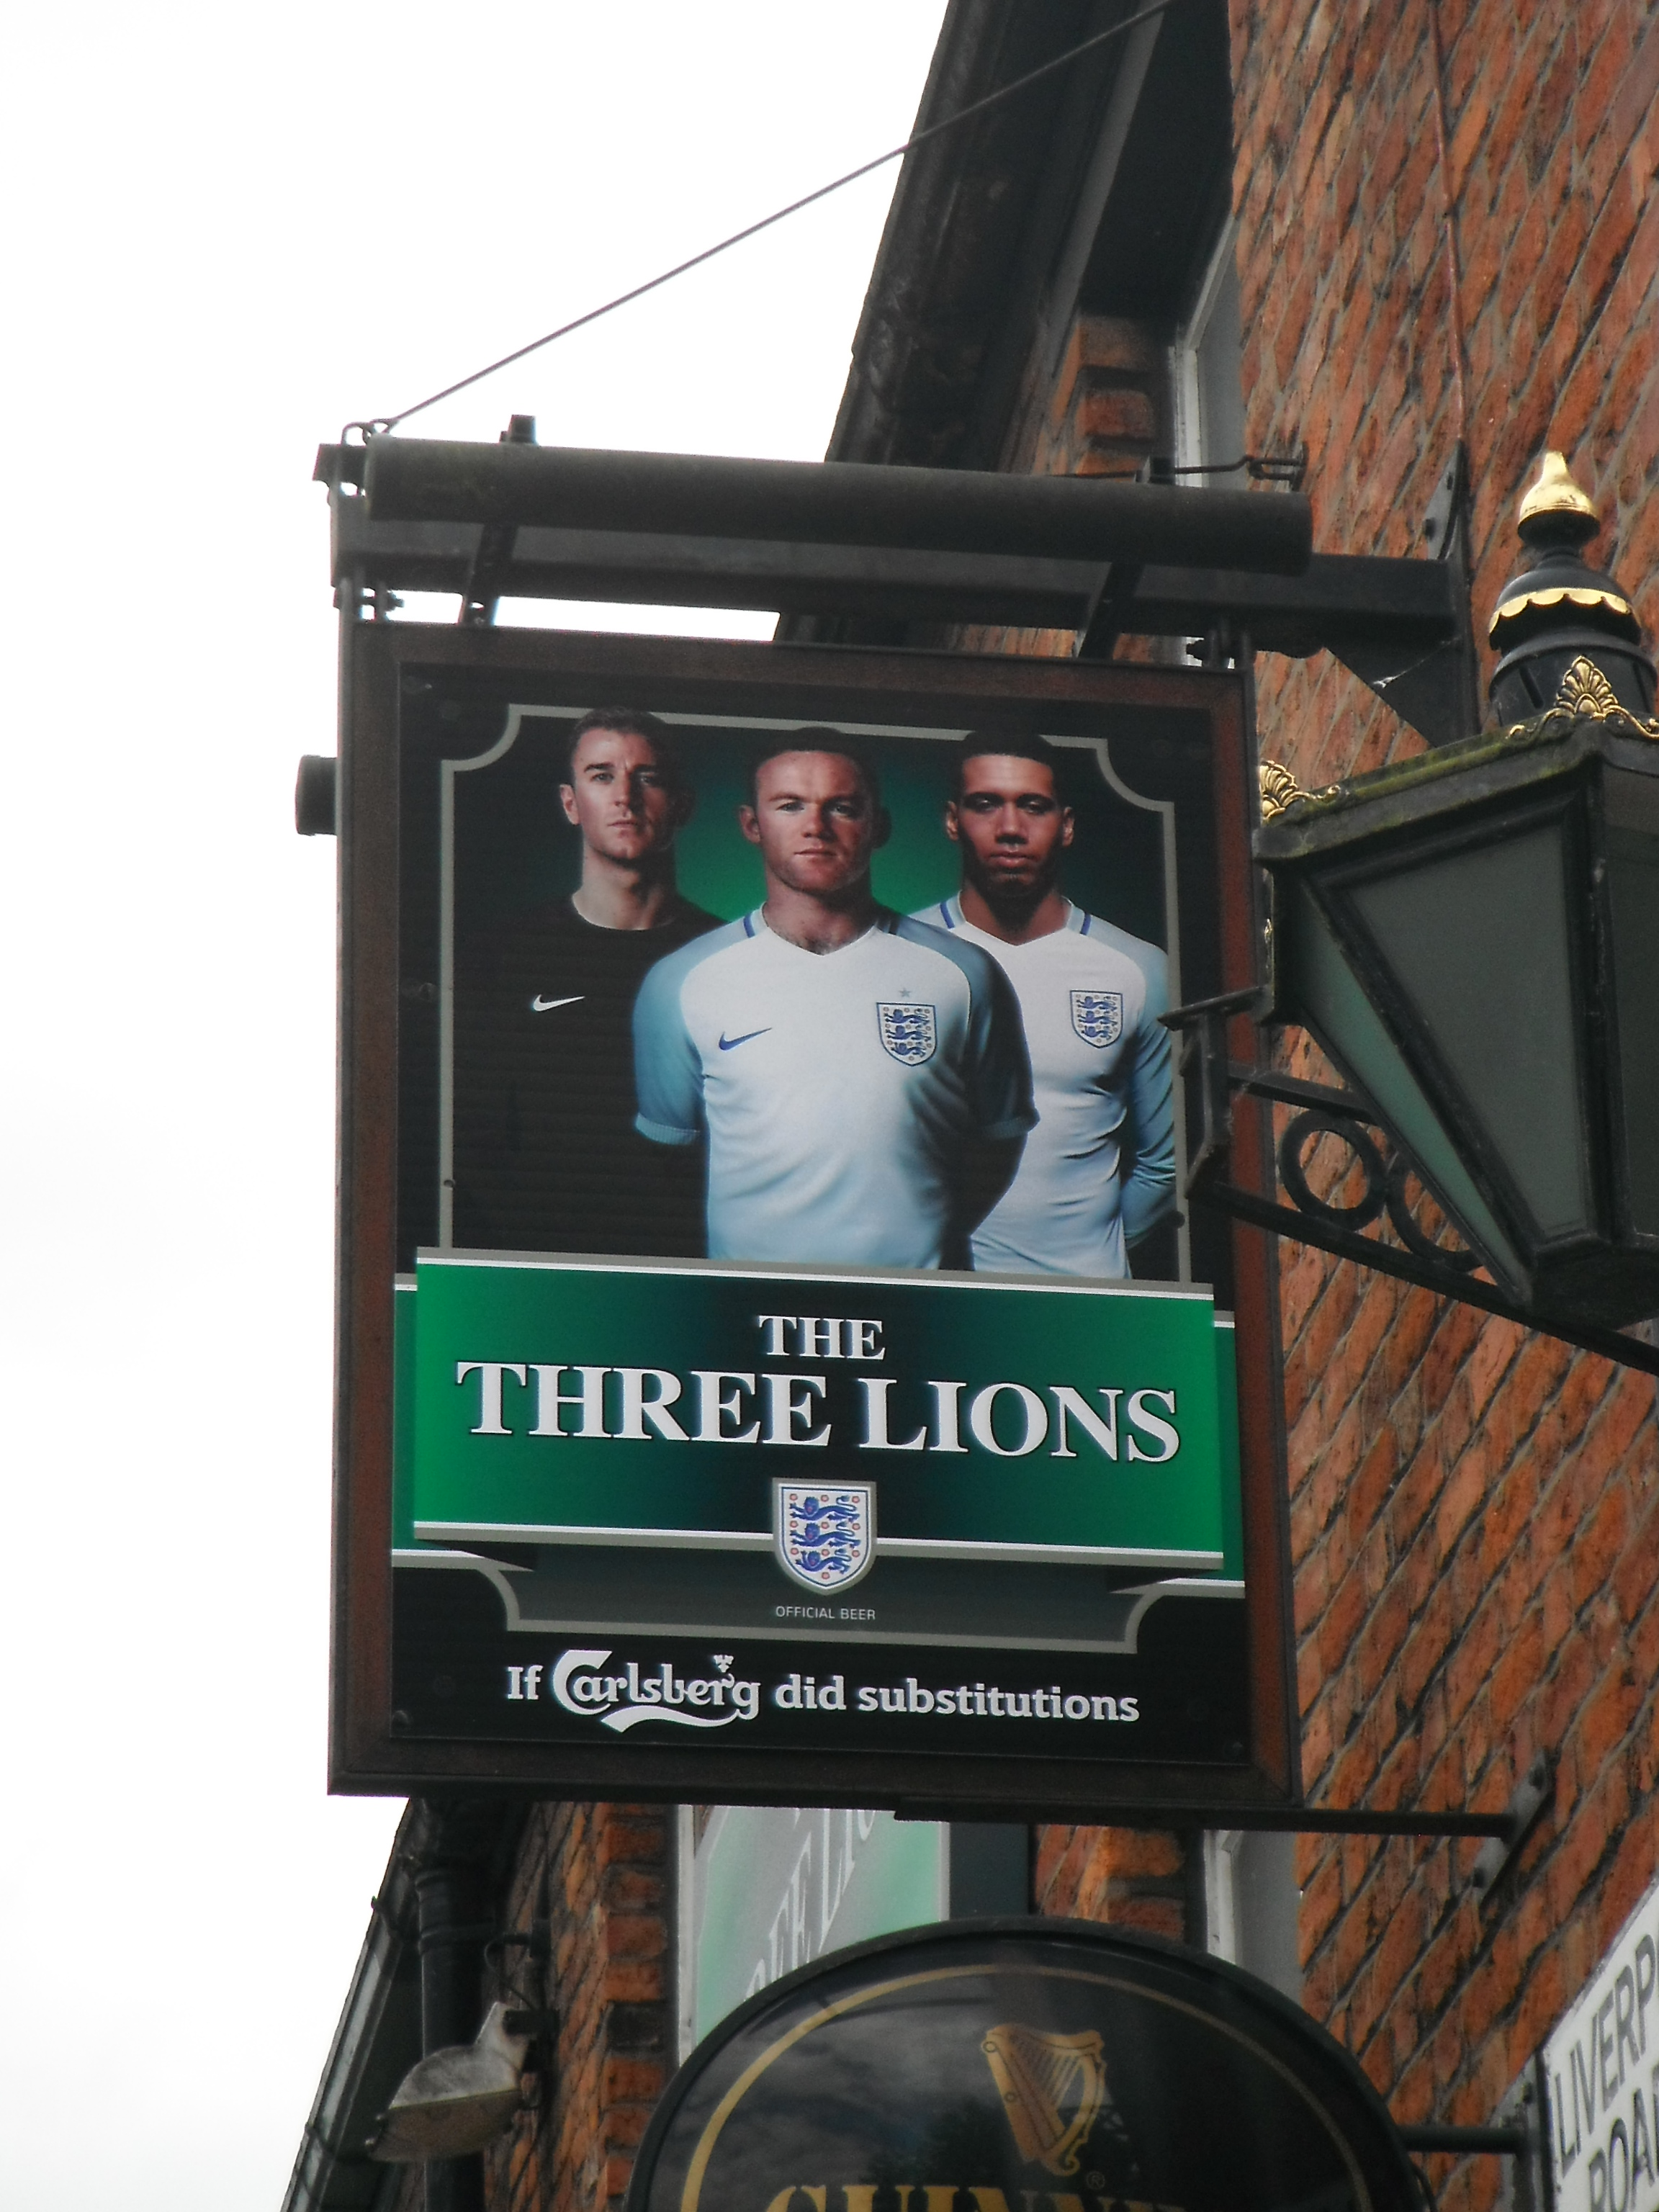 Photo taken by me – The Three Lions Pub, Castlefield, Manchester